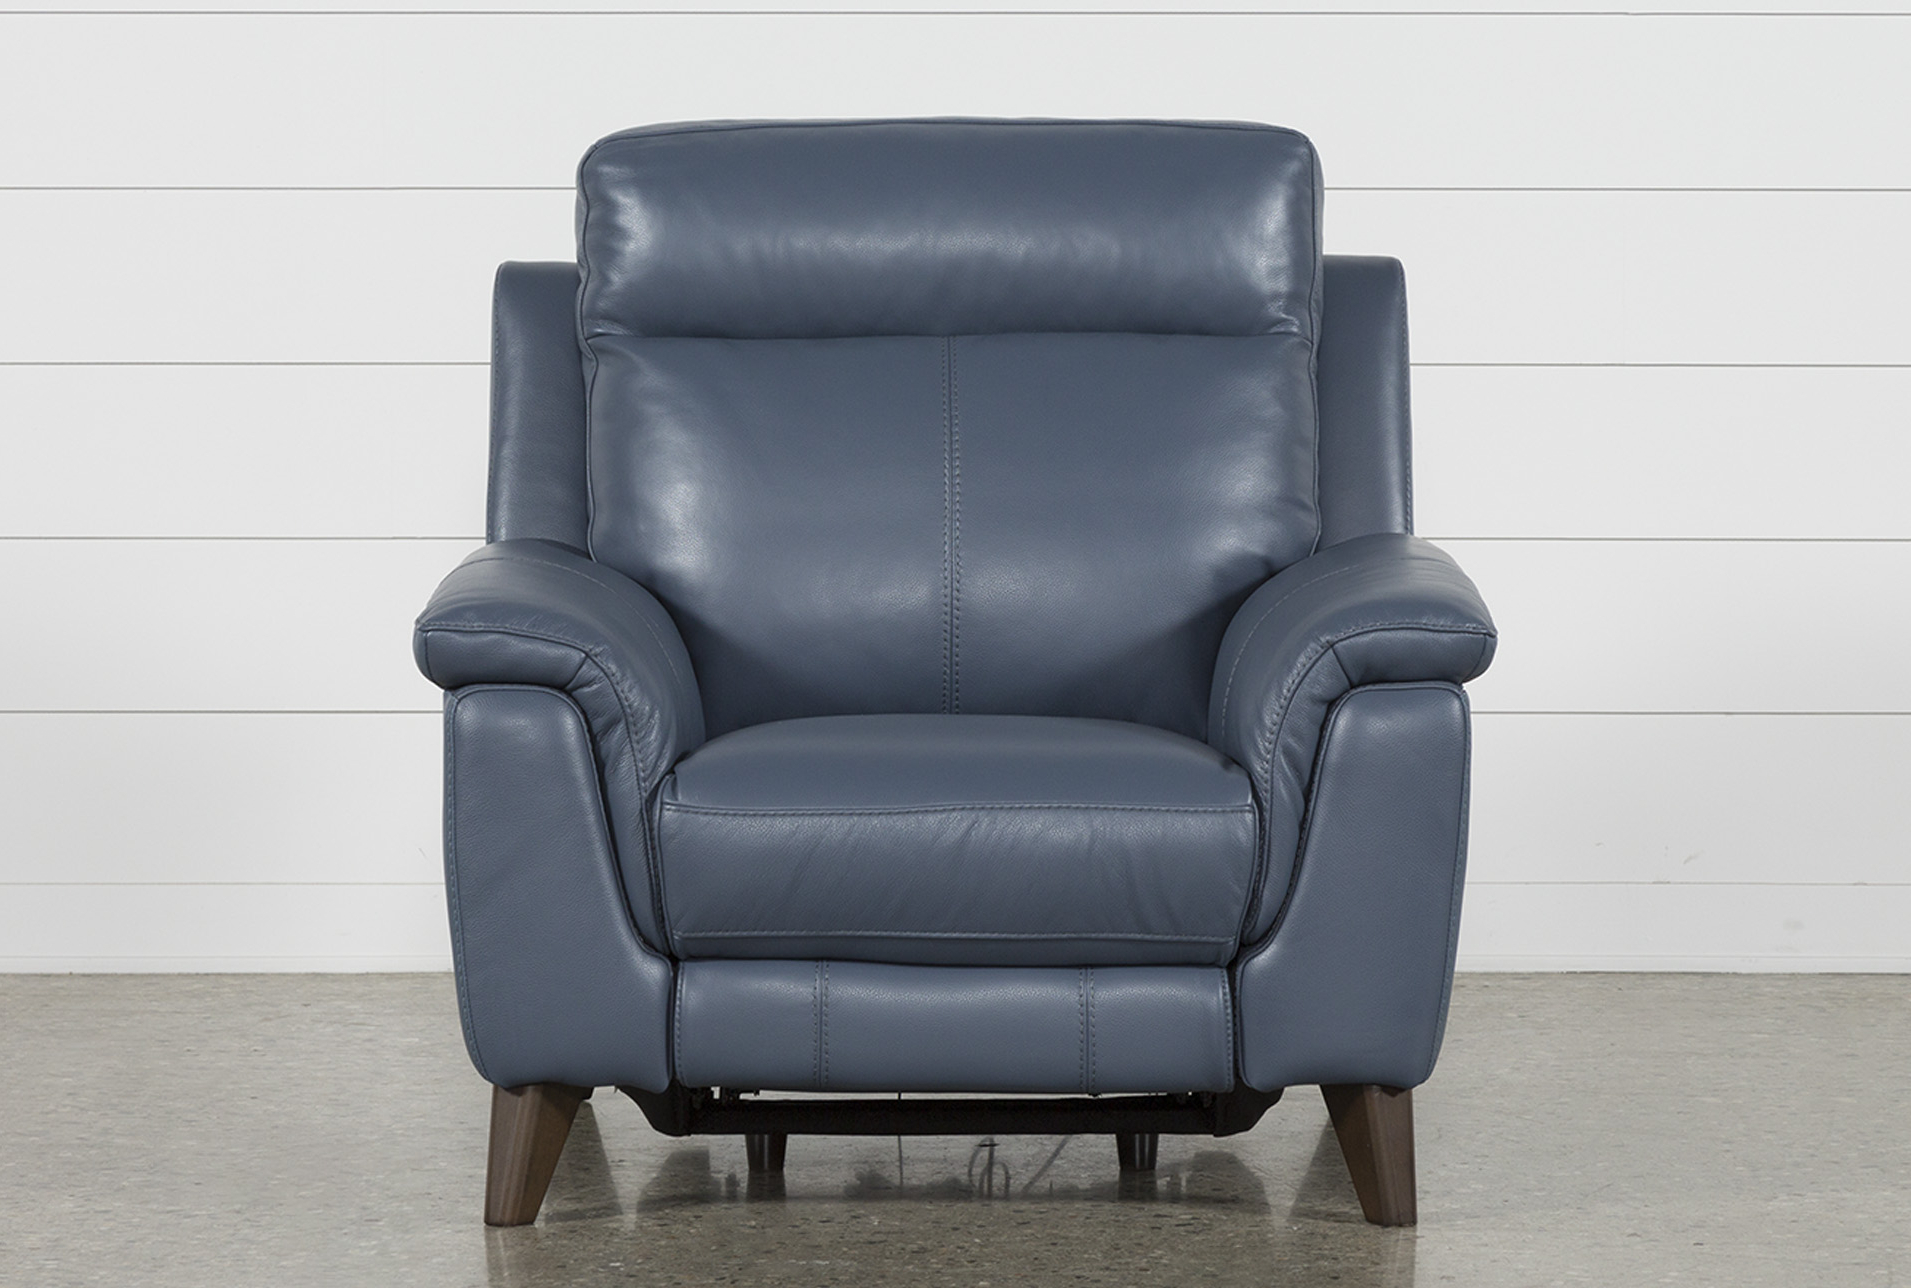 Products With Regard To Moana Blue Leather Power Reclining Sofa Chairs With Usb (Gallery 2 of 20)